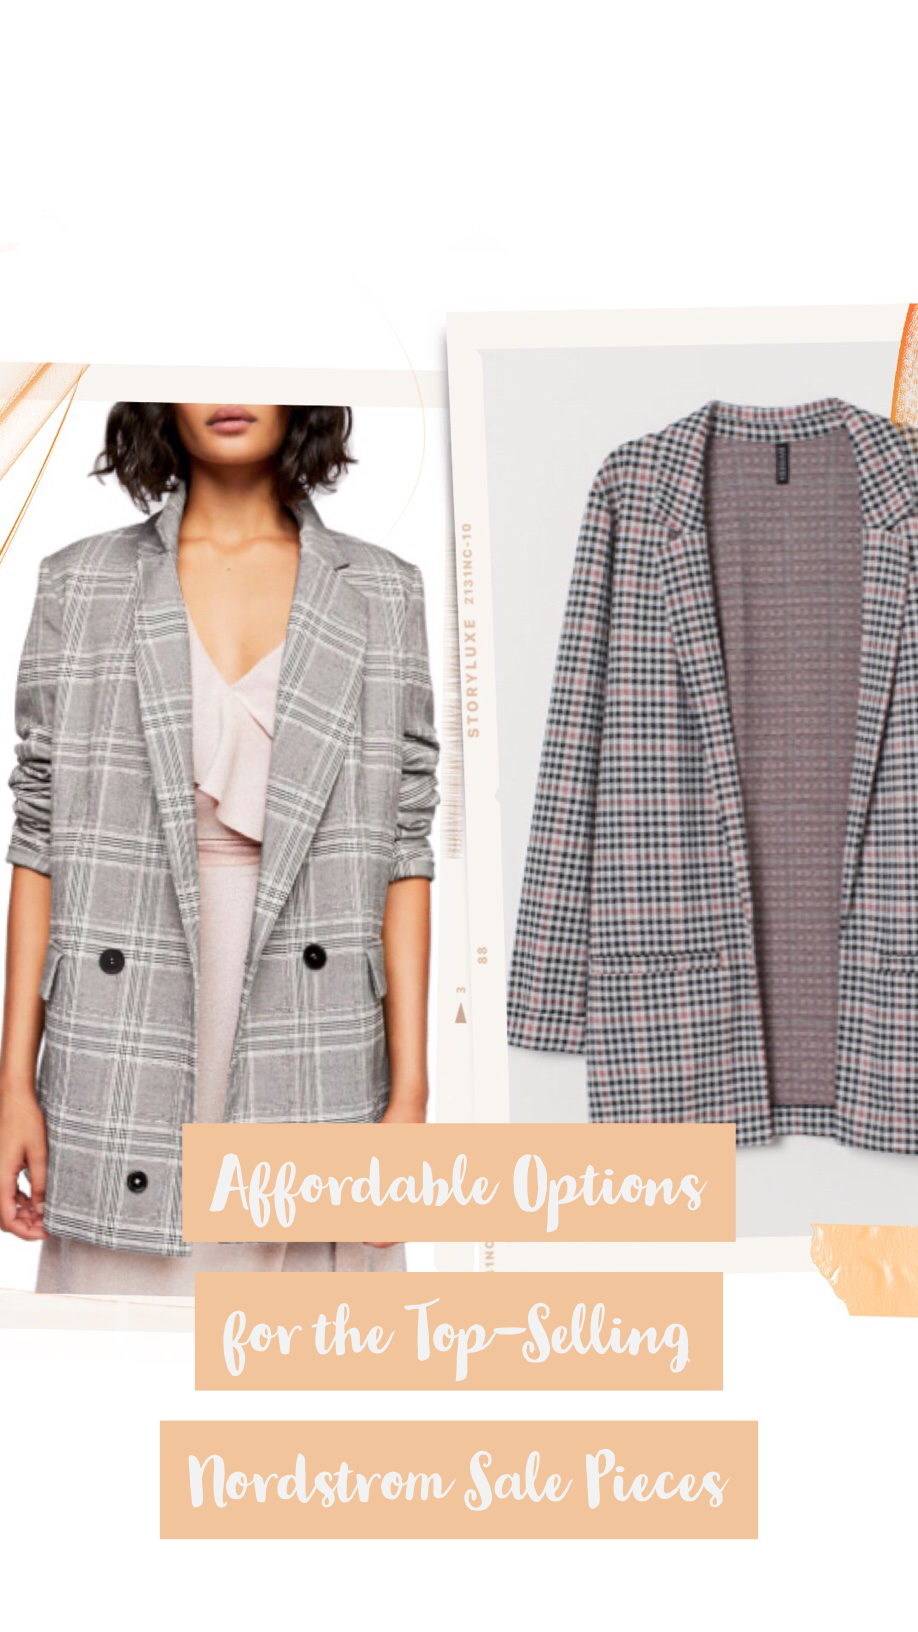 Affordable Options For The Top-Selling Nordstrom Sale Pieces